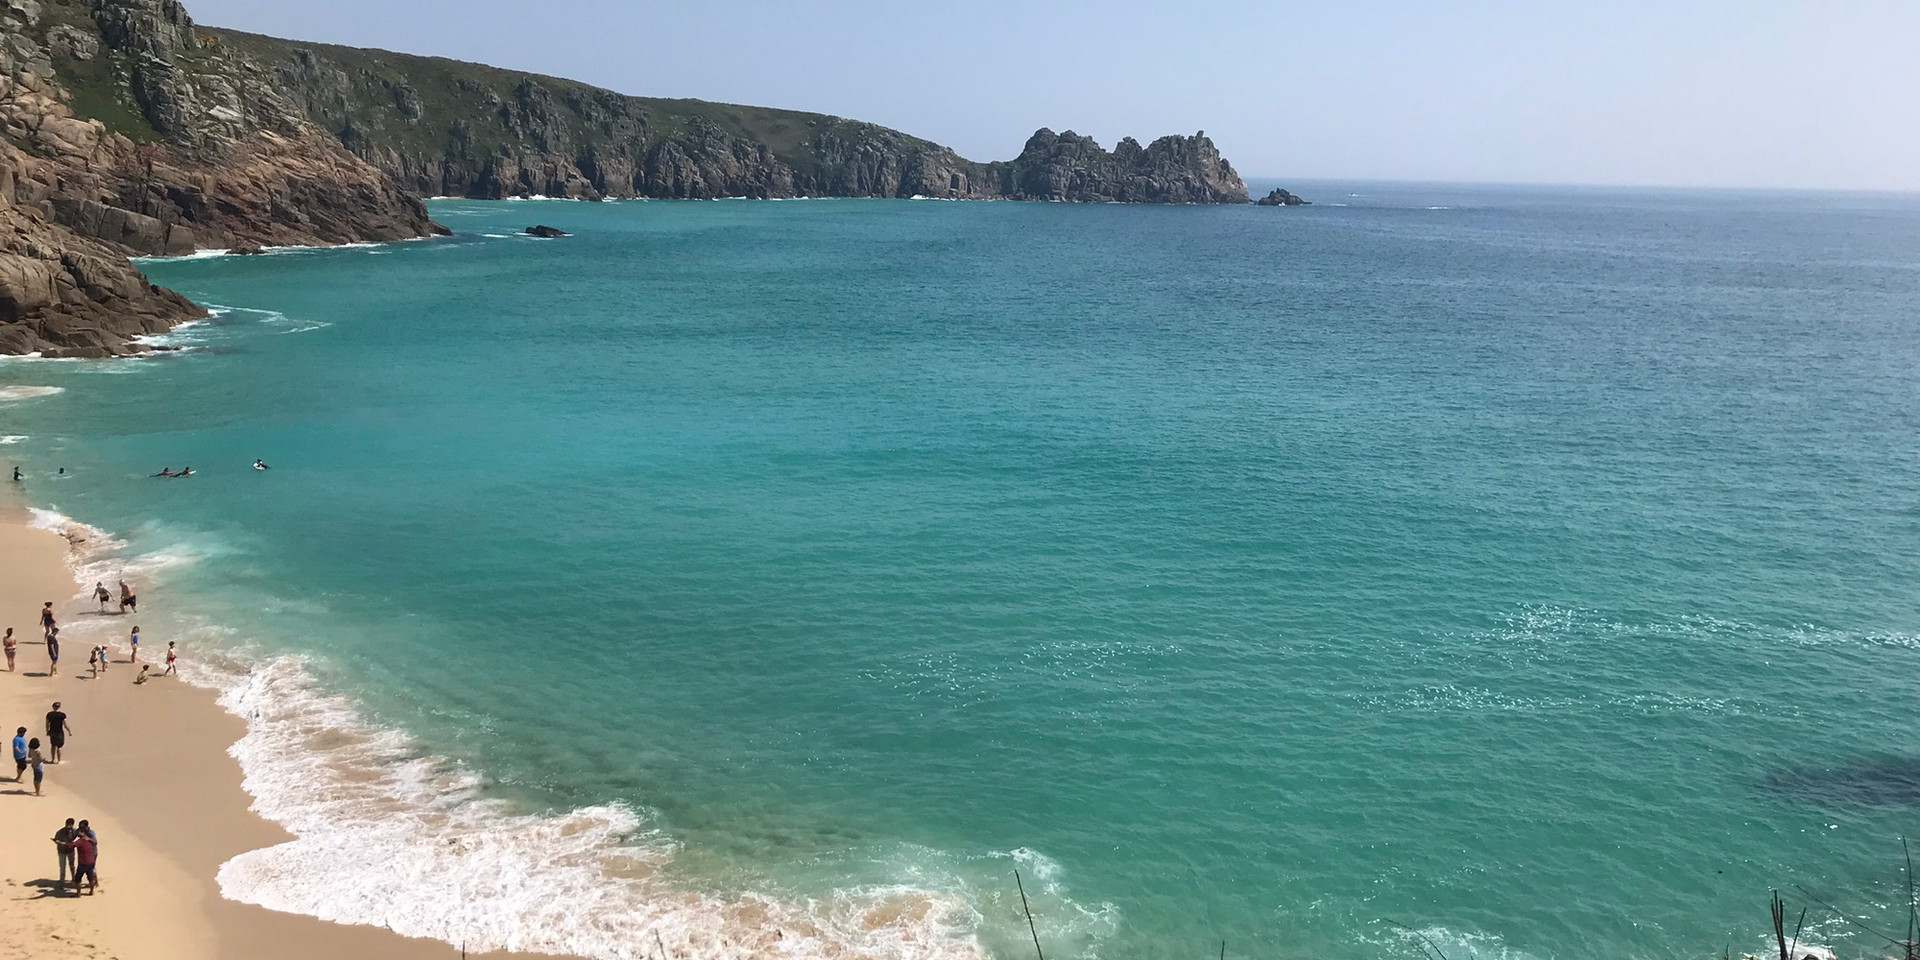 Porthcurno beach (10 mins walk) over towards Pedny and the Logan Rock